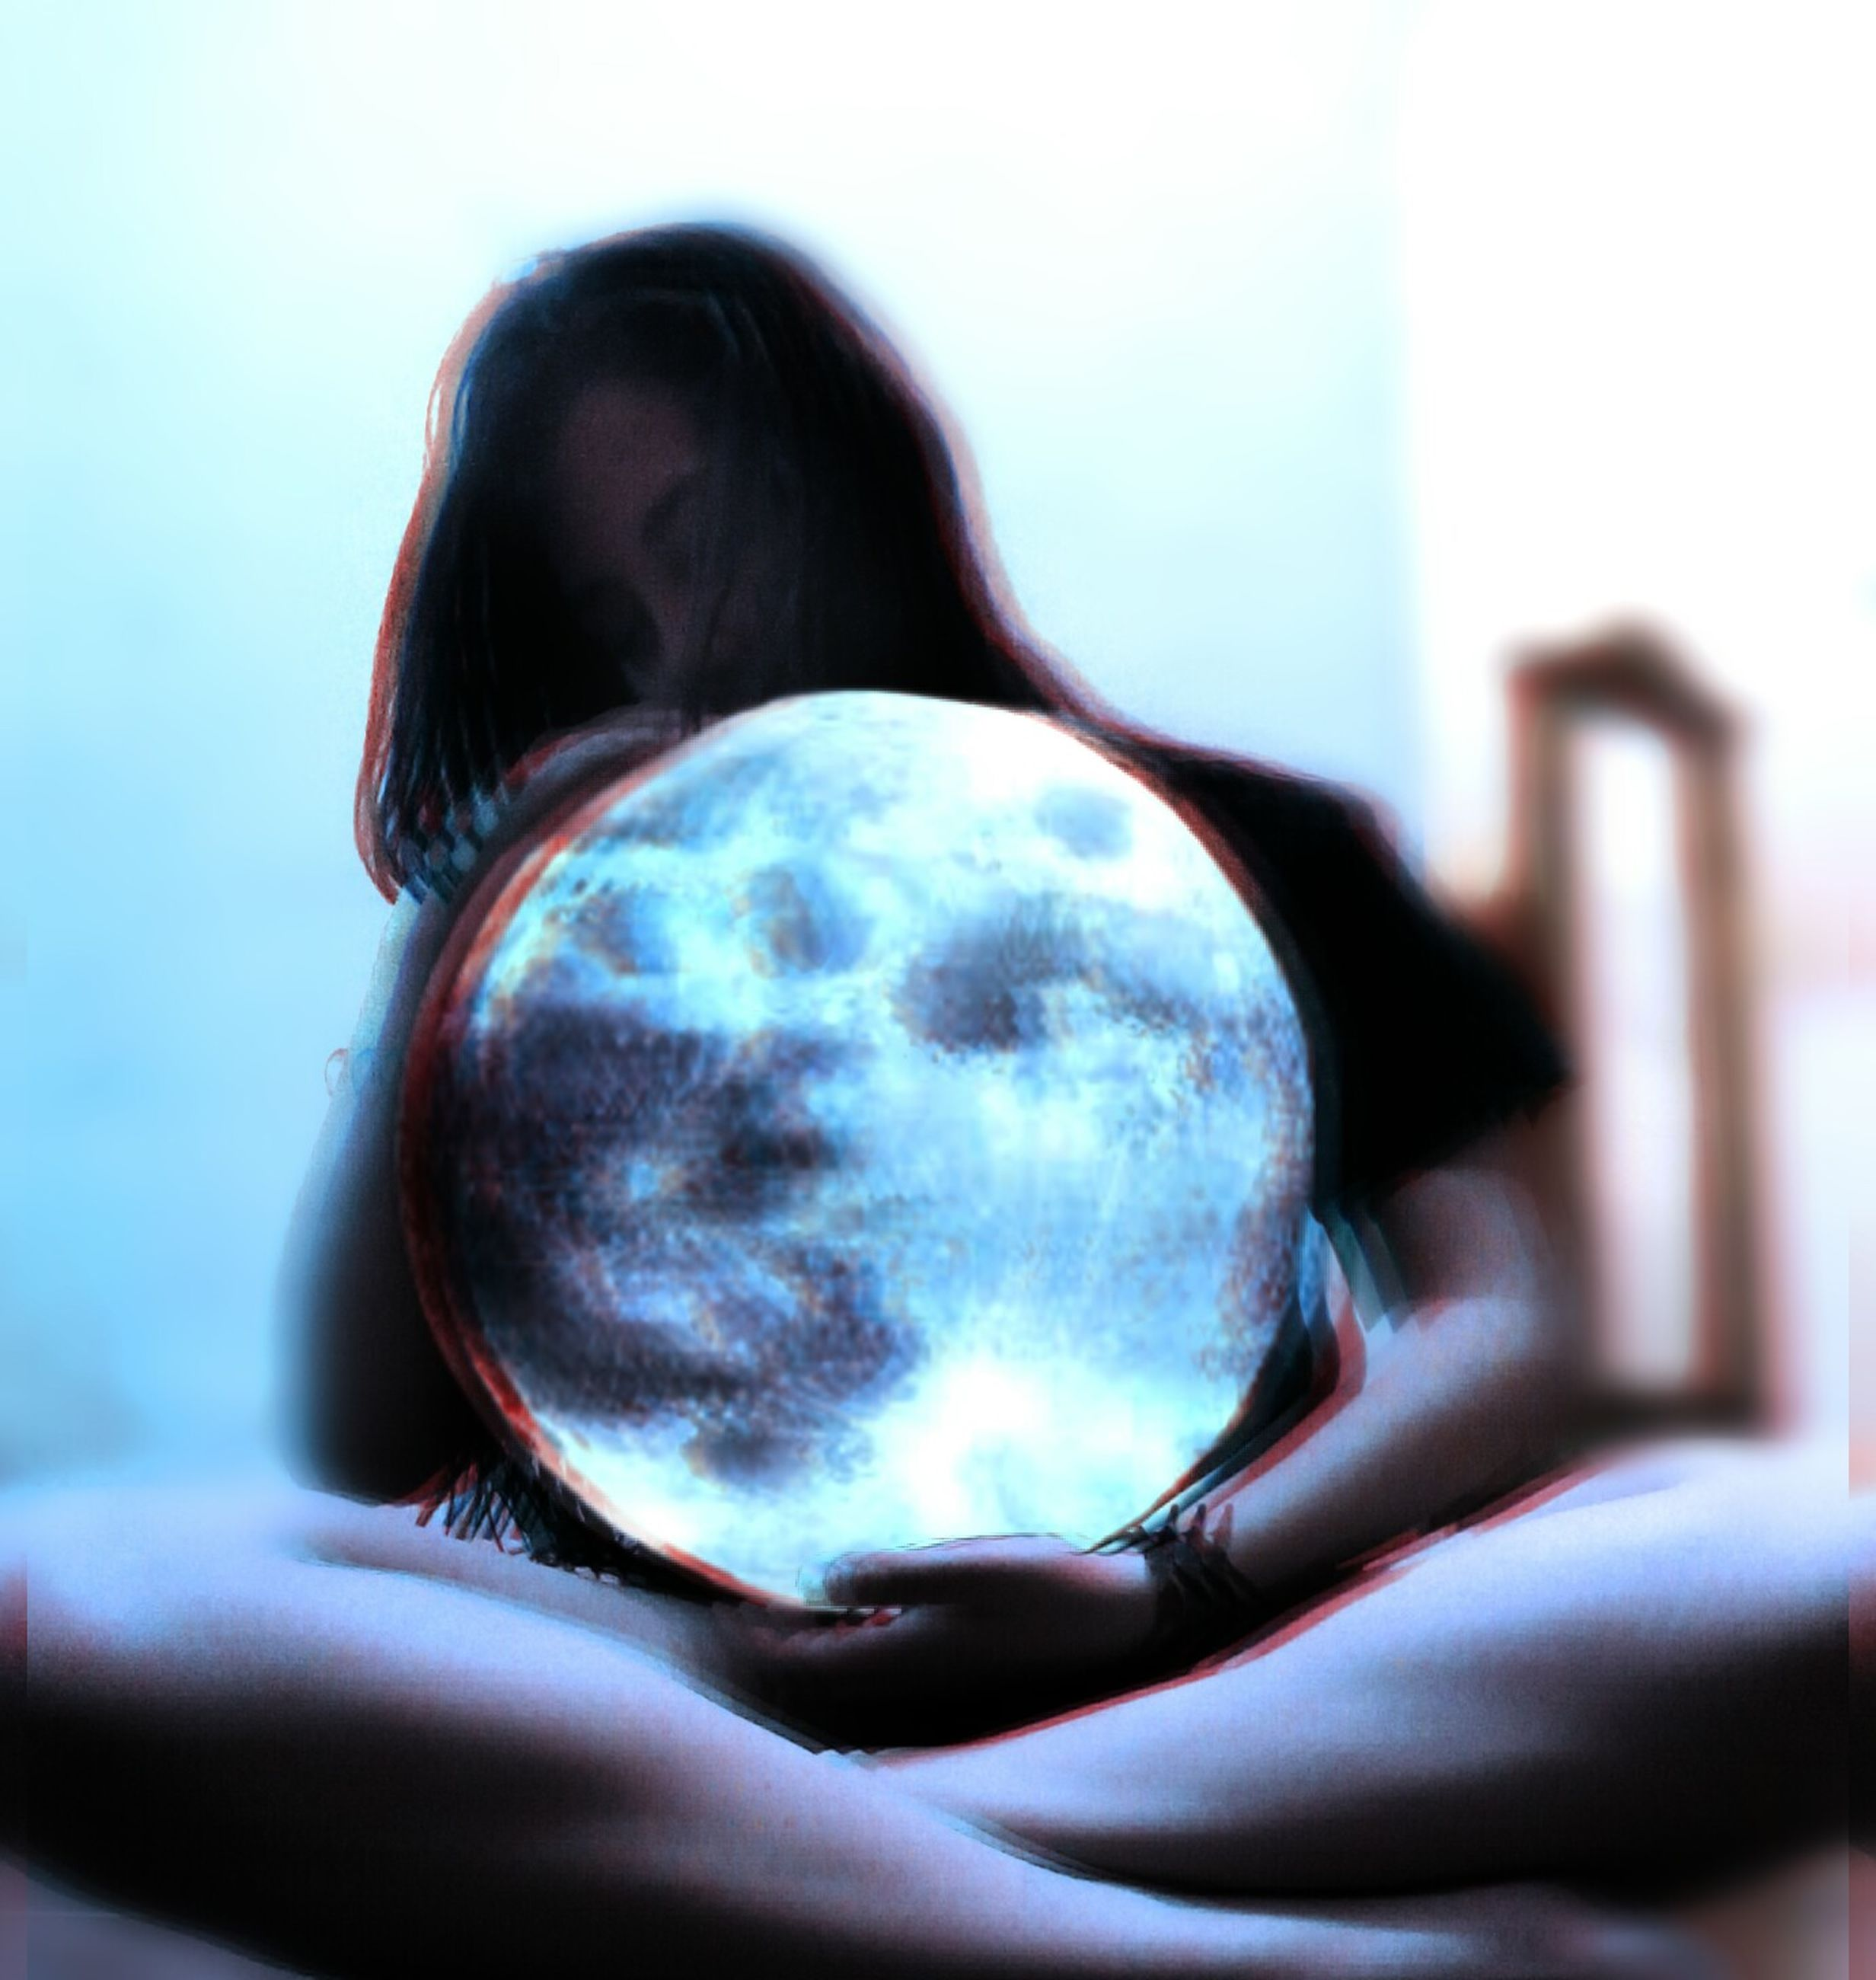 holding, crystal ball, sphere, human hand, human body part, focus on foreground, close-up, one person, real people, planet earth, indoors, sky, day, astronomy, adult, people